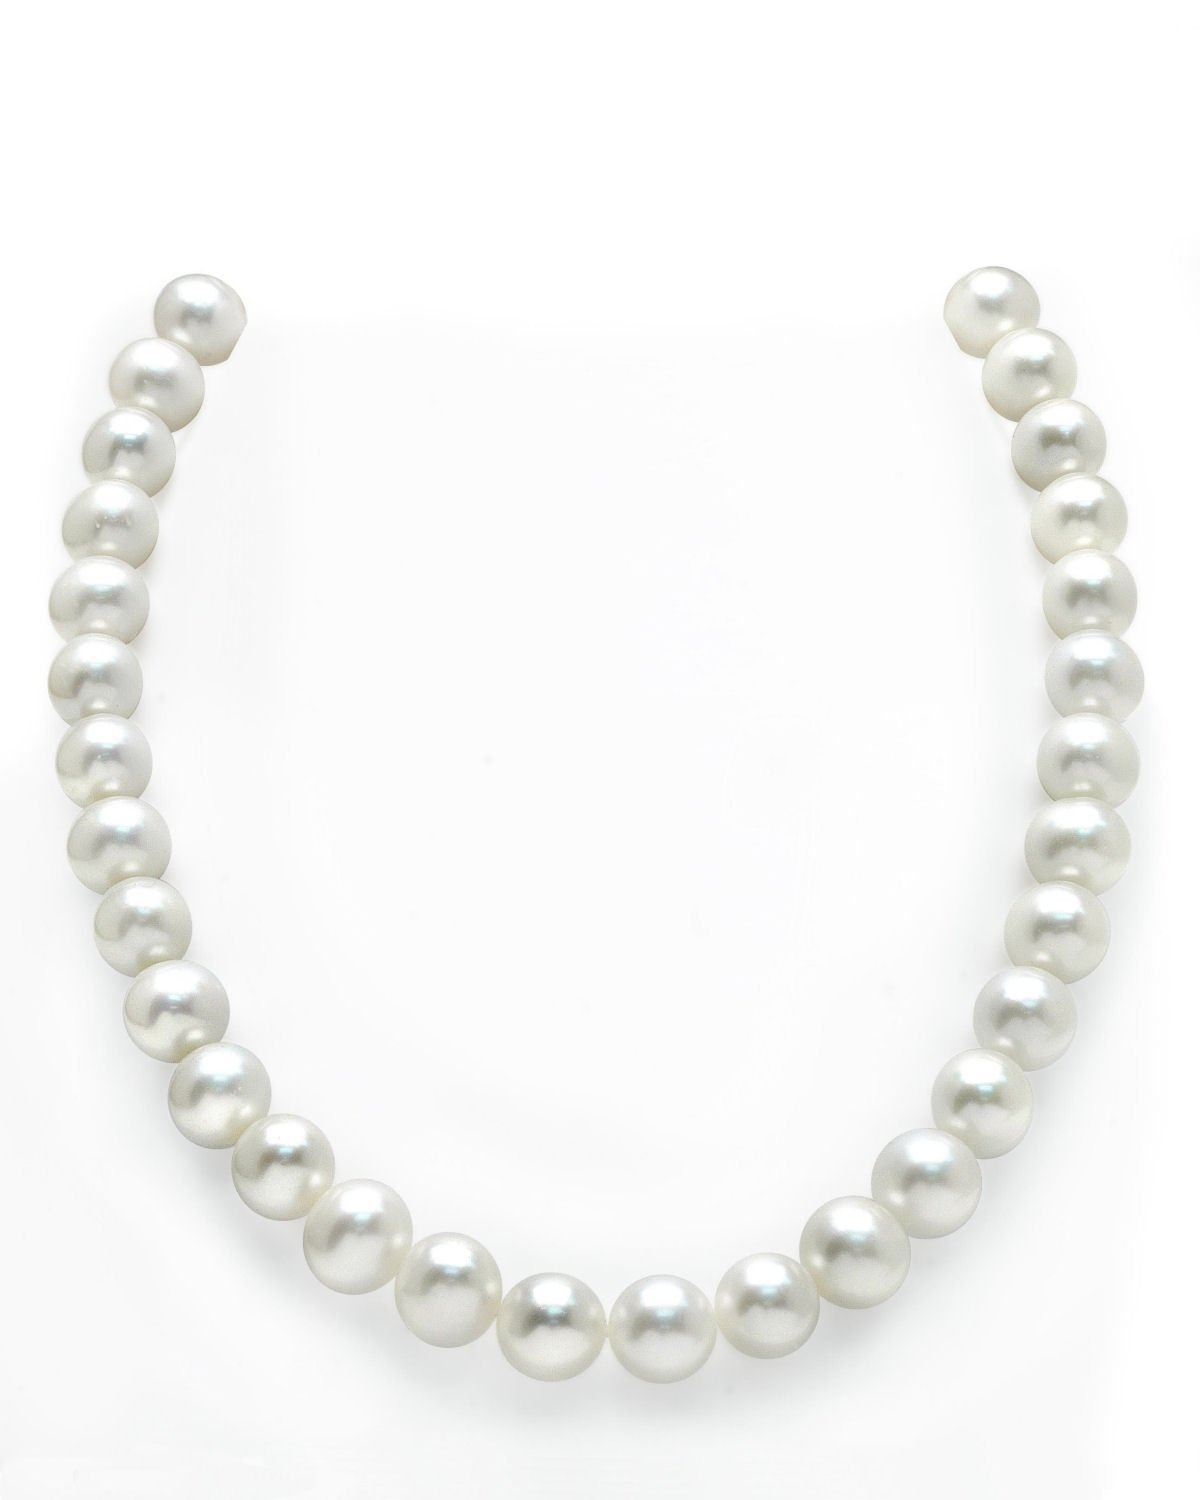 14K Gold 11-12mm White Freshwater Cultured Pearl Necklace - AAAA Quality, 16'' Choker Length